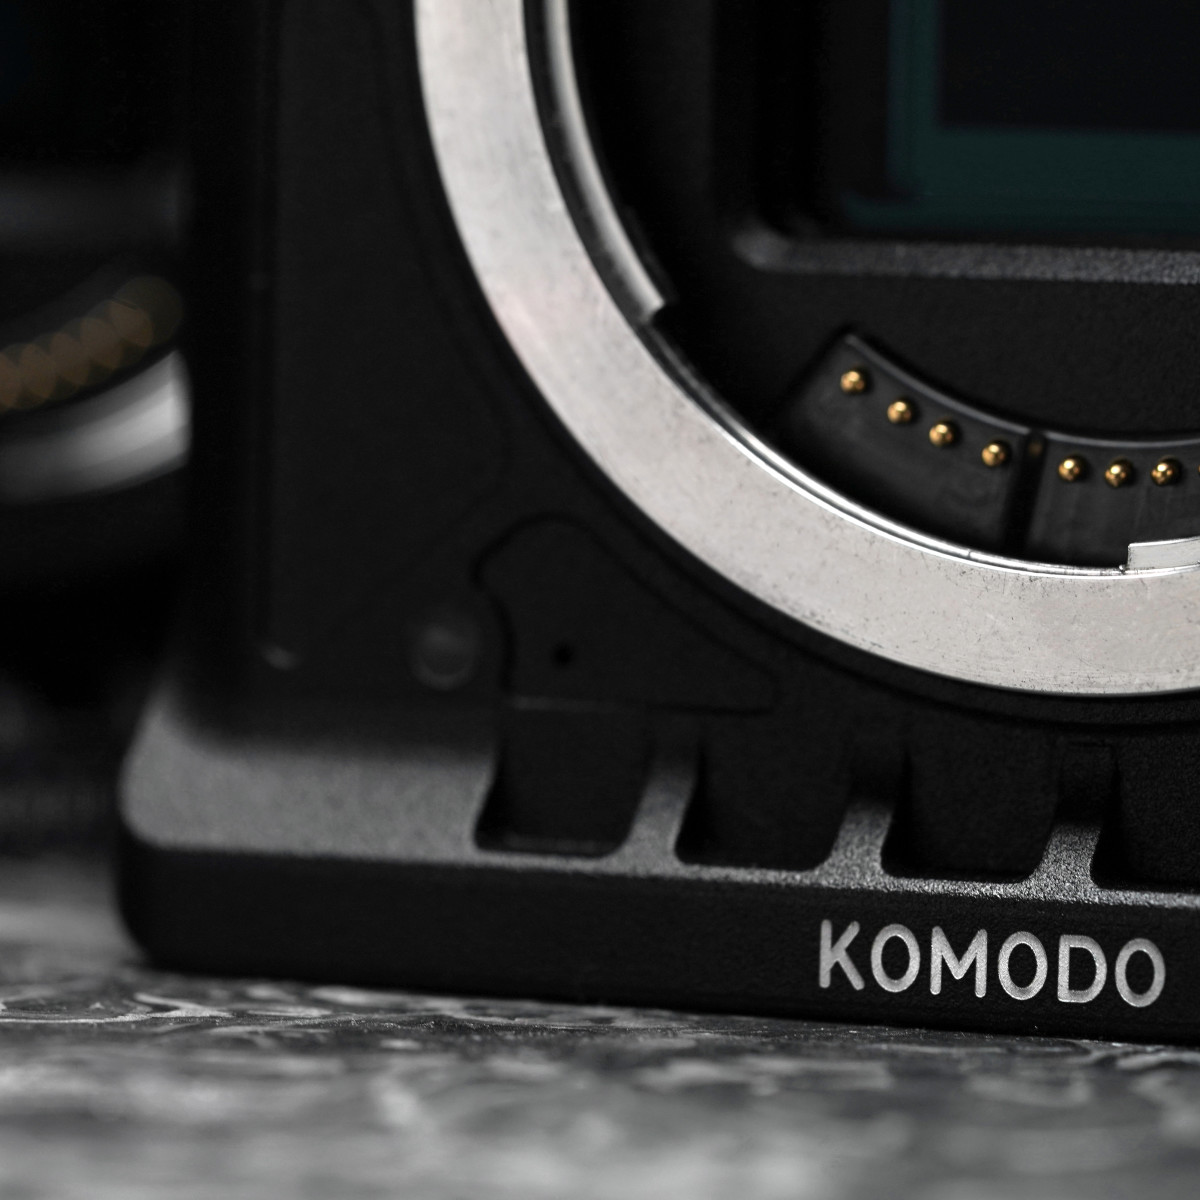 RED Komodo Camera Module